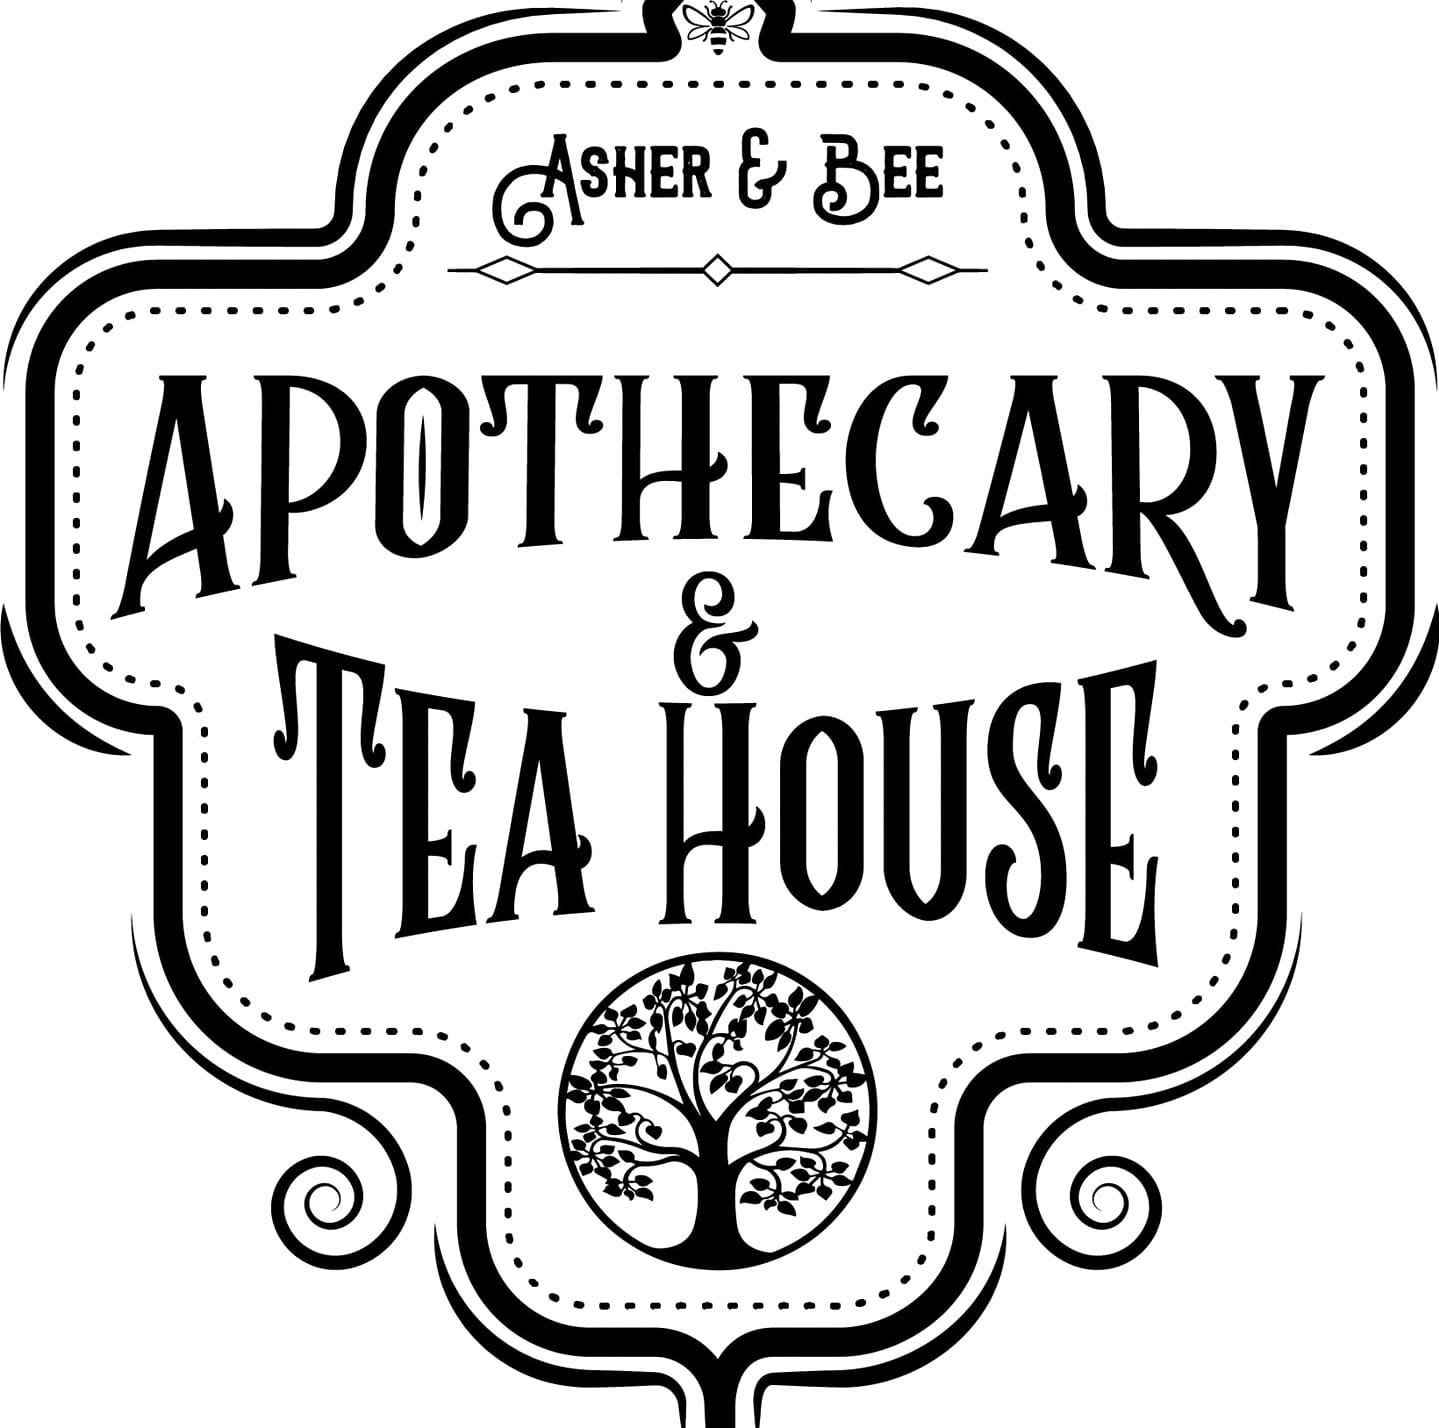 Asher & Bee Apothecary and Tea House hosts grand opening with free samples, giveaways